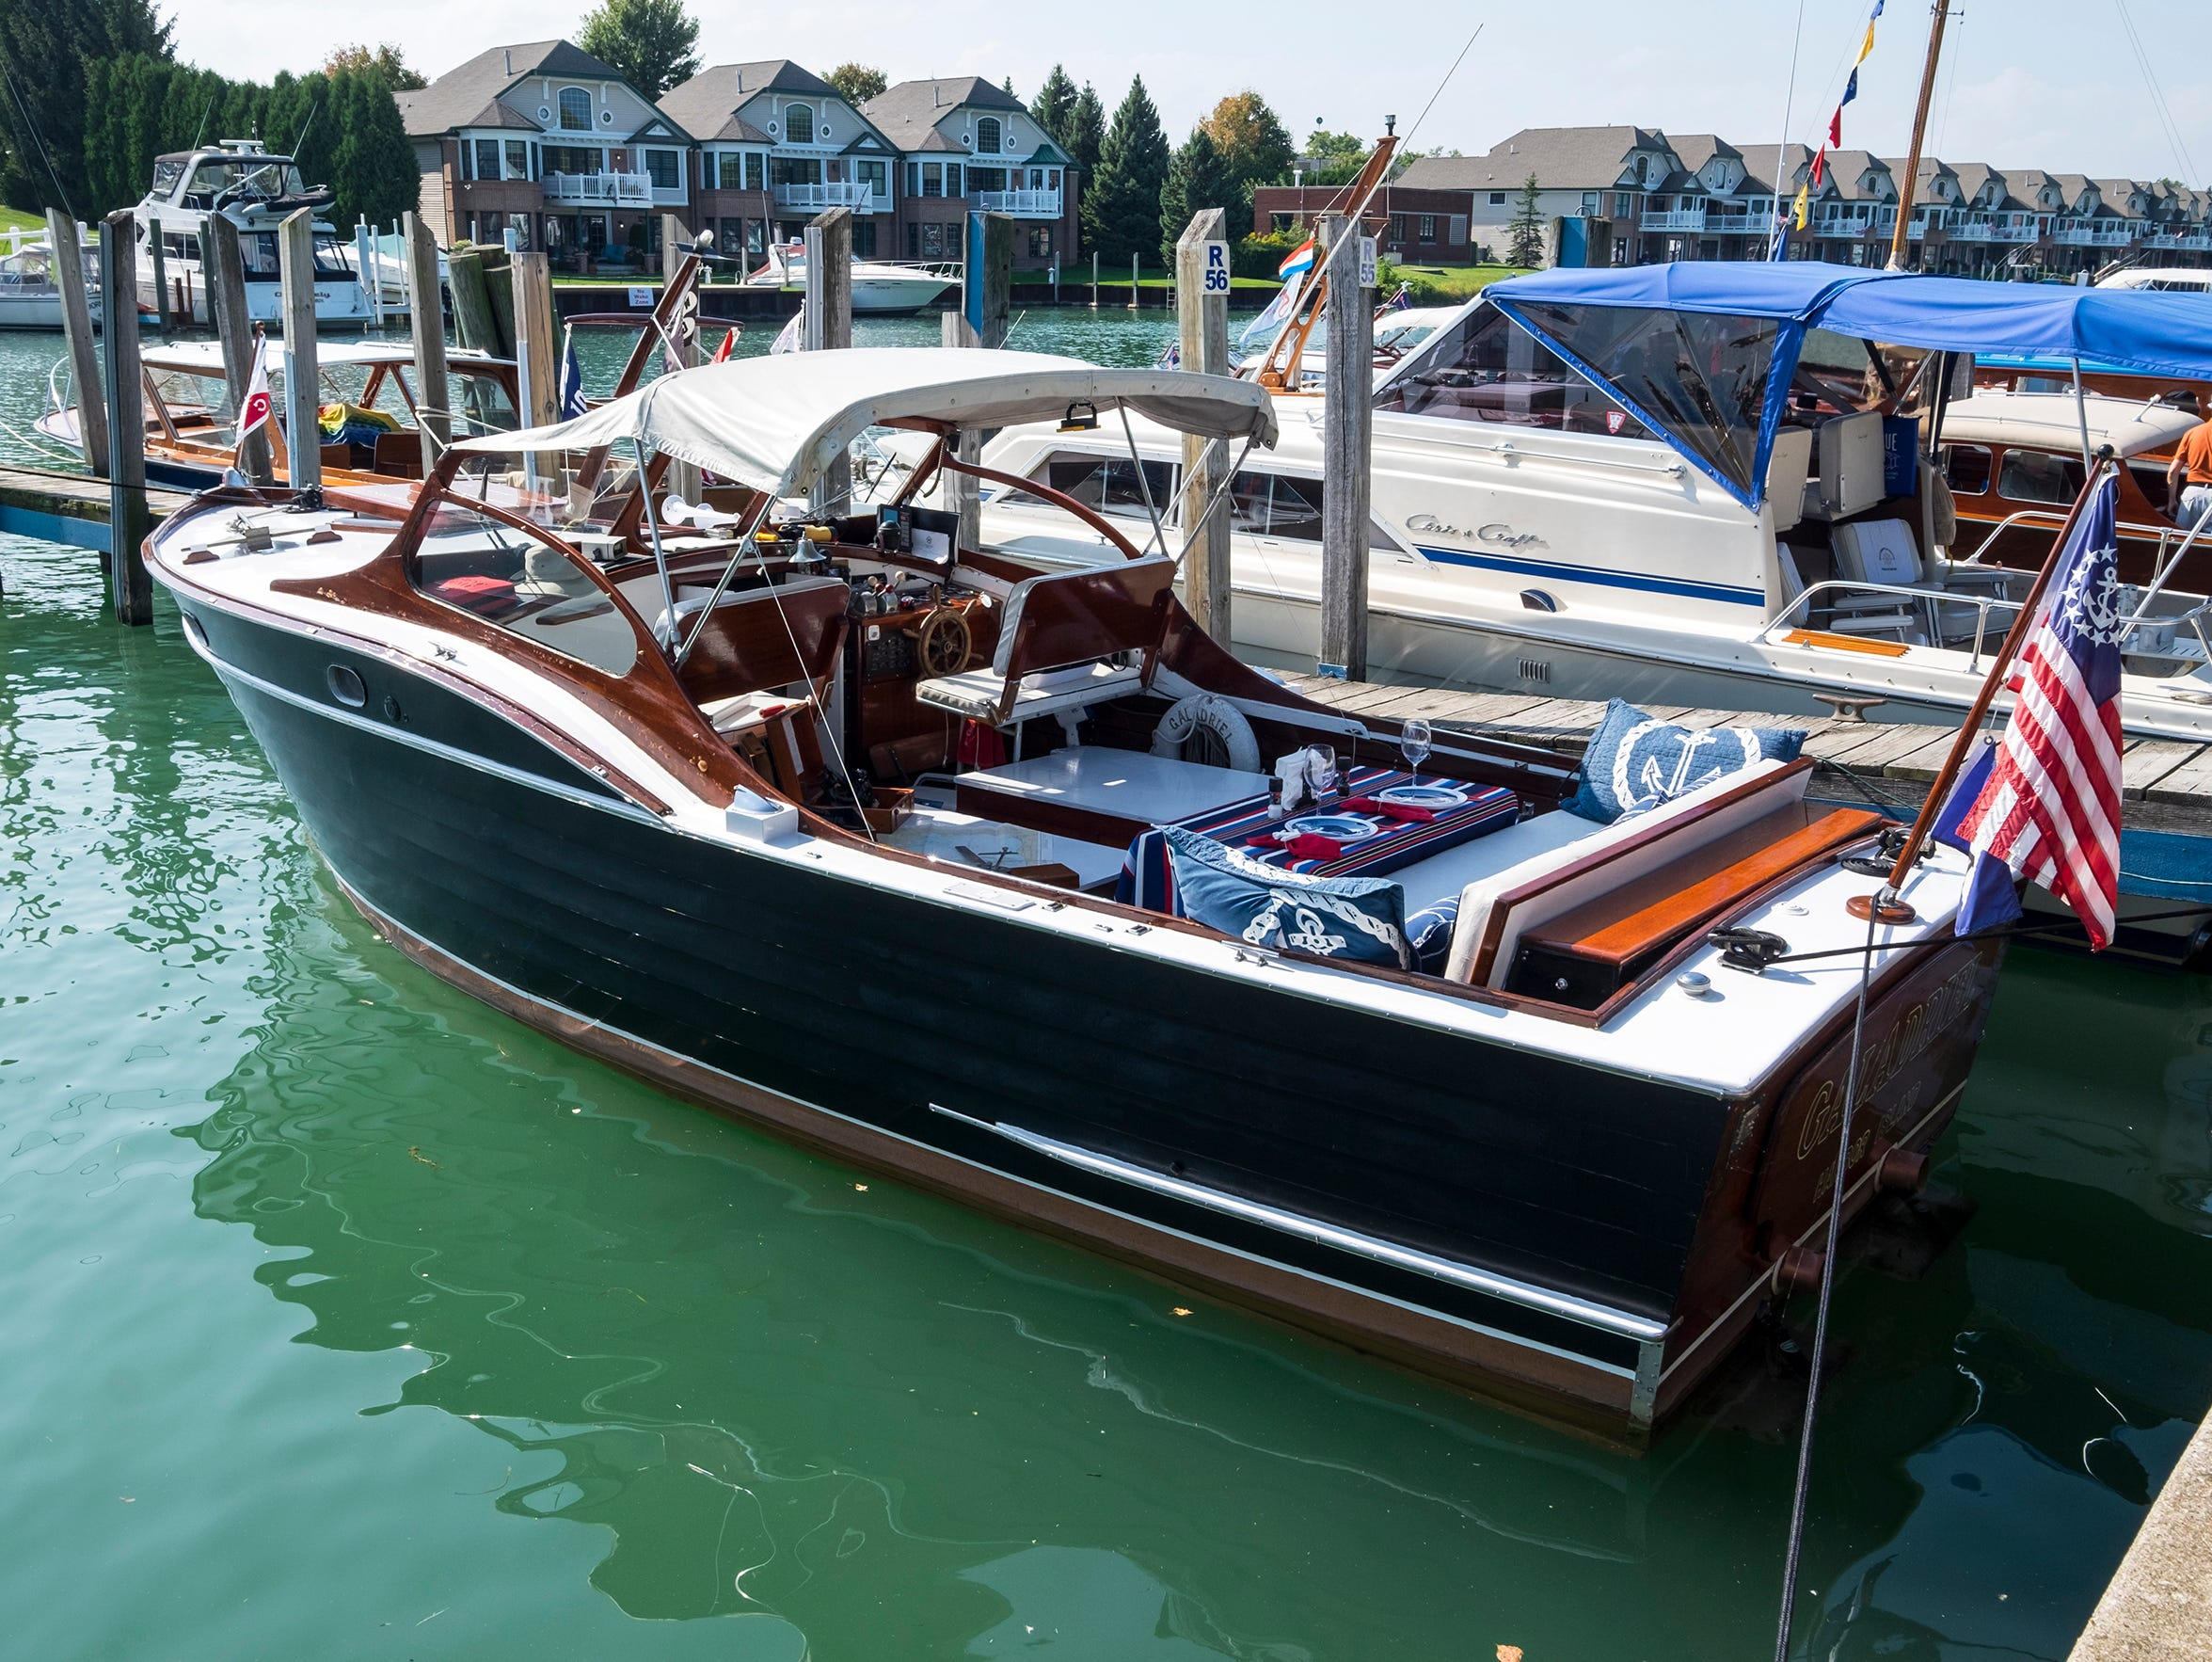 The Galadriel, a 25-foot 1959 Jafco Seamaster, is docked Friday, Sept. 14, 2018, at the River Street Marina during the 2018 ACBS International Boat Show.